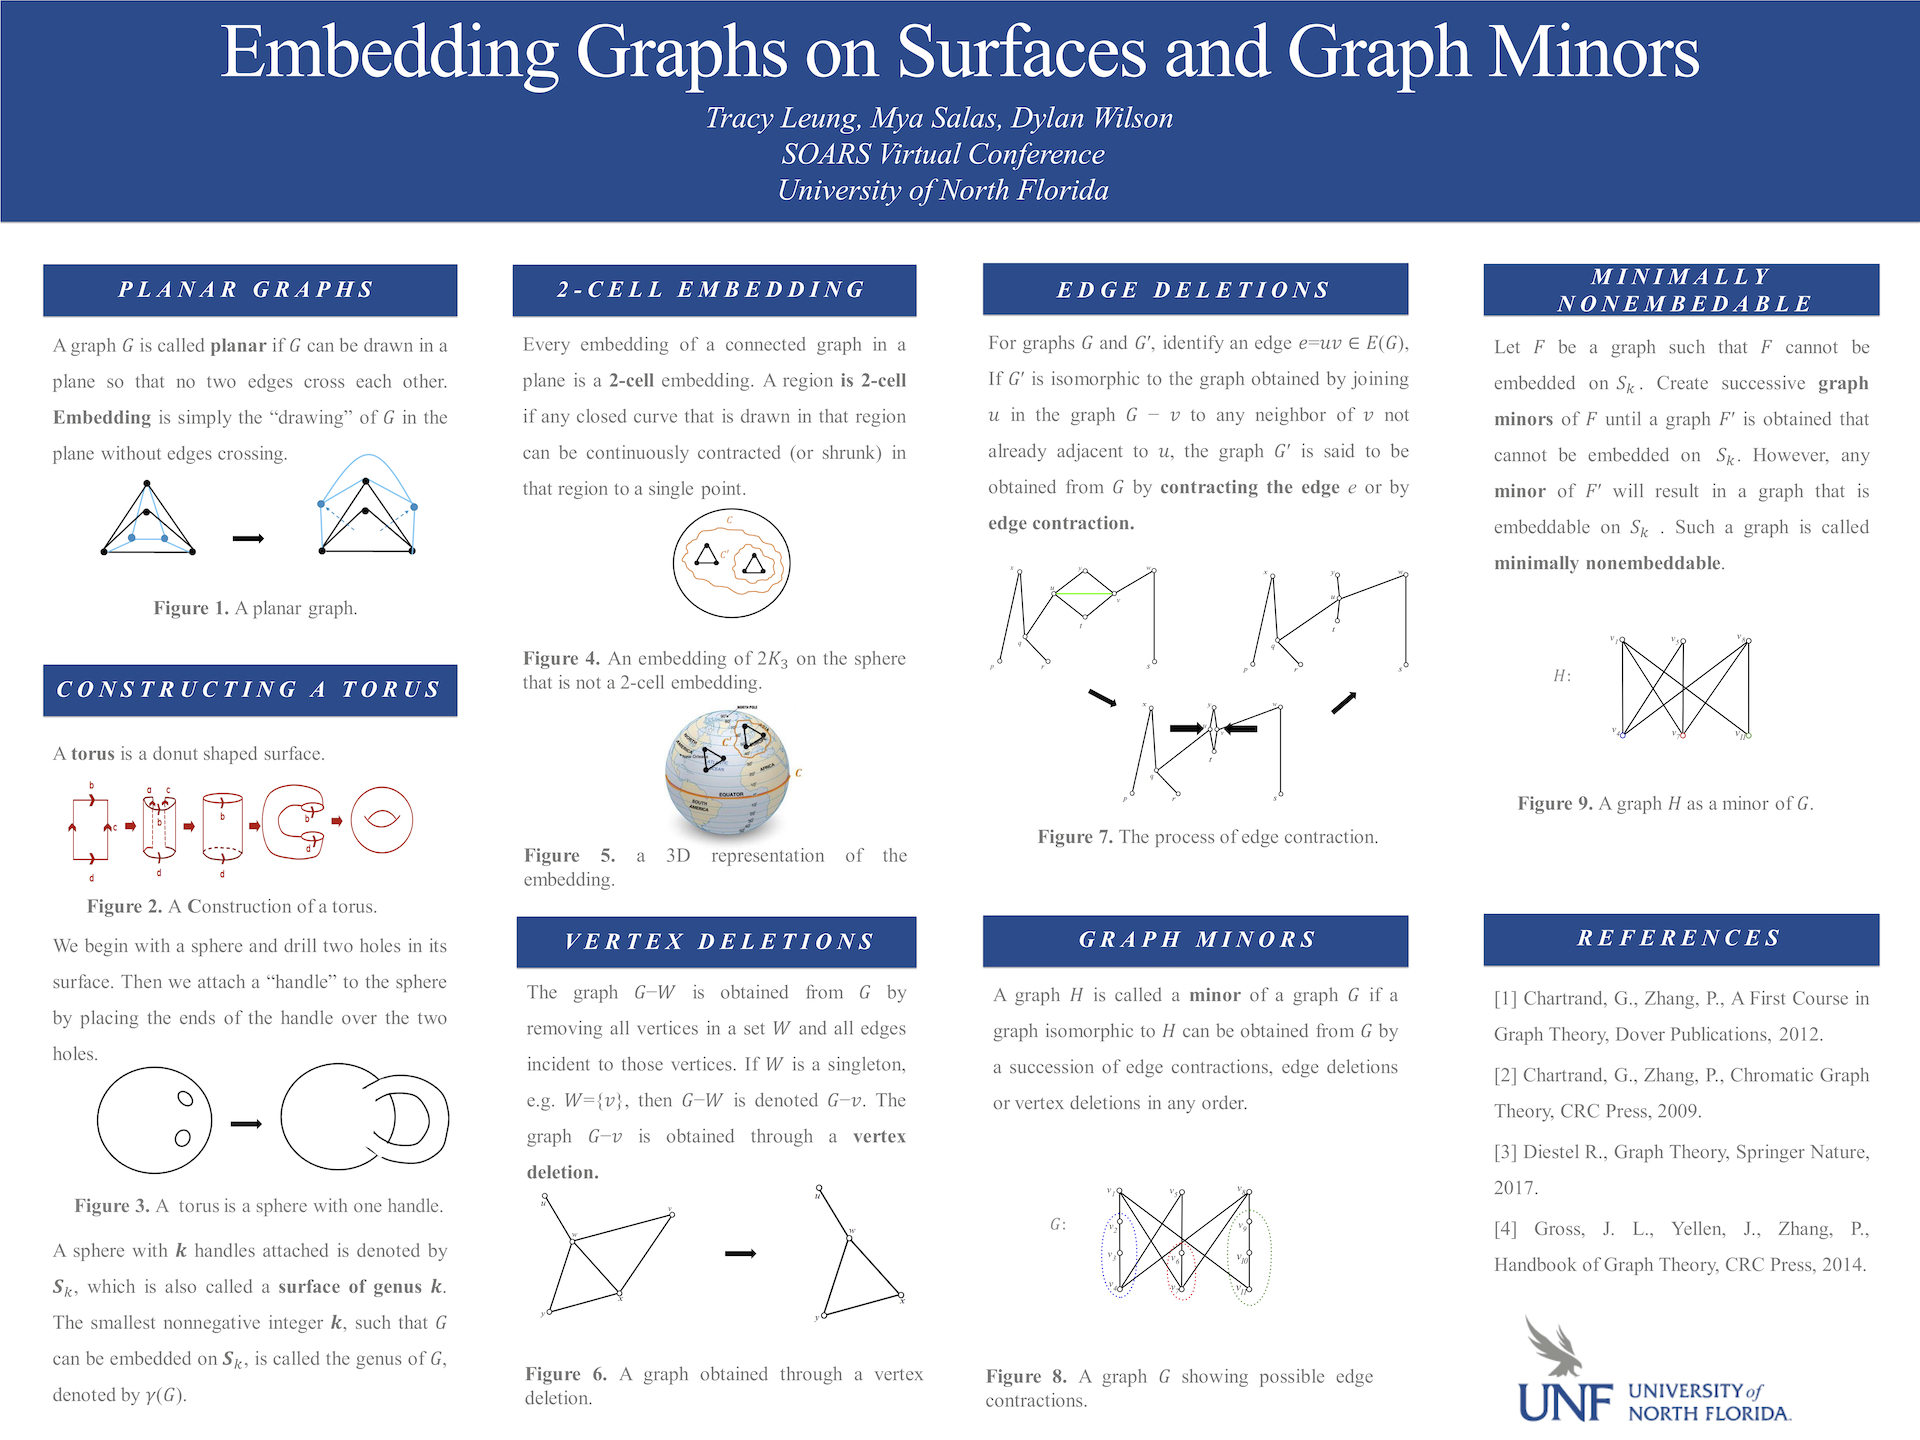 Embedding Graphs on Surfaces and Graph Minors poster